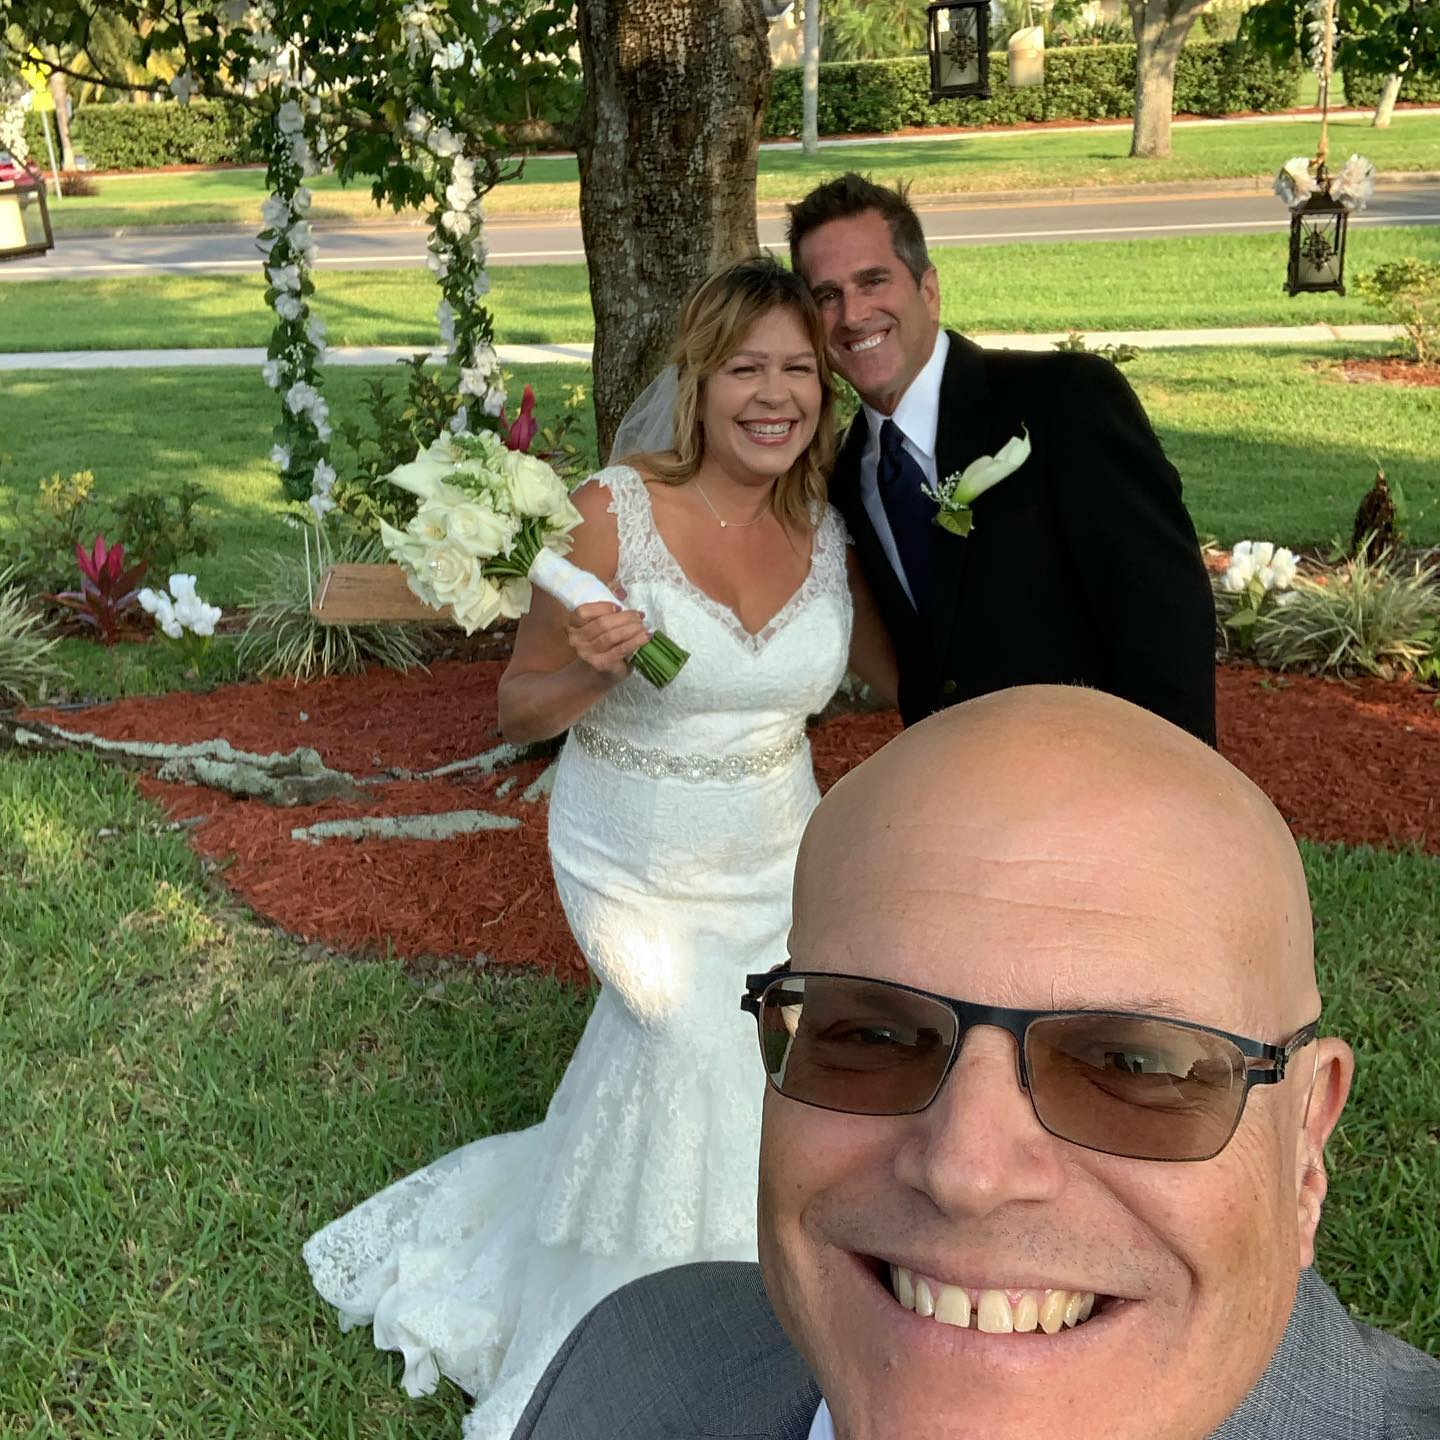 wedding officiant with couple planning a small wedding